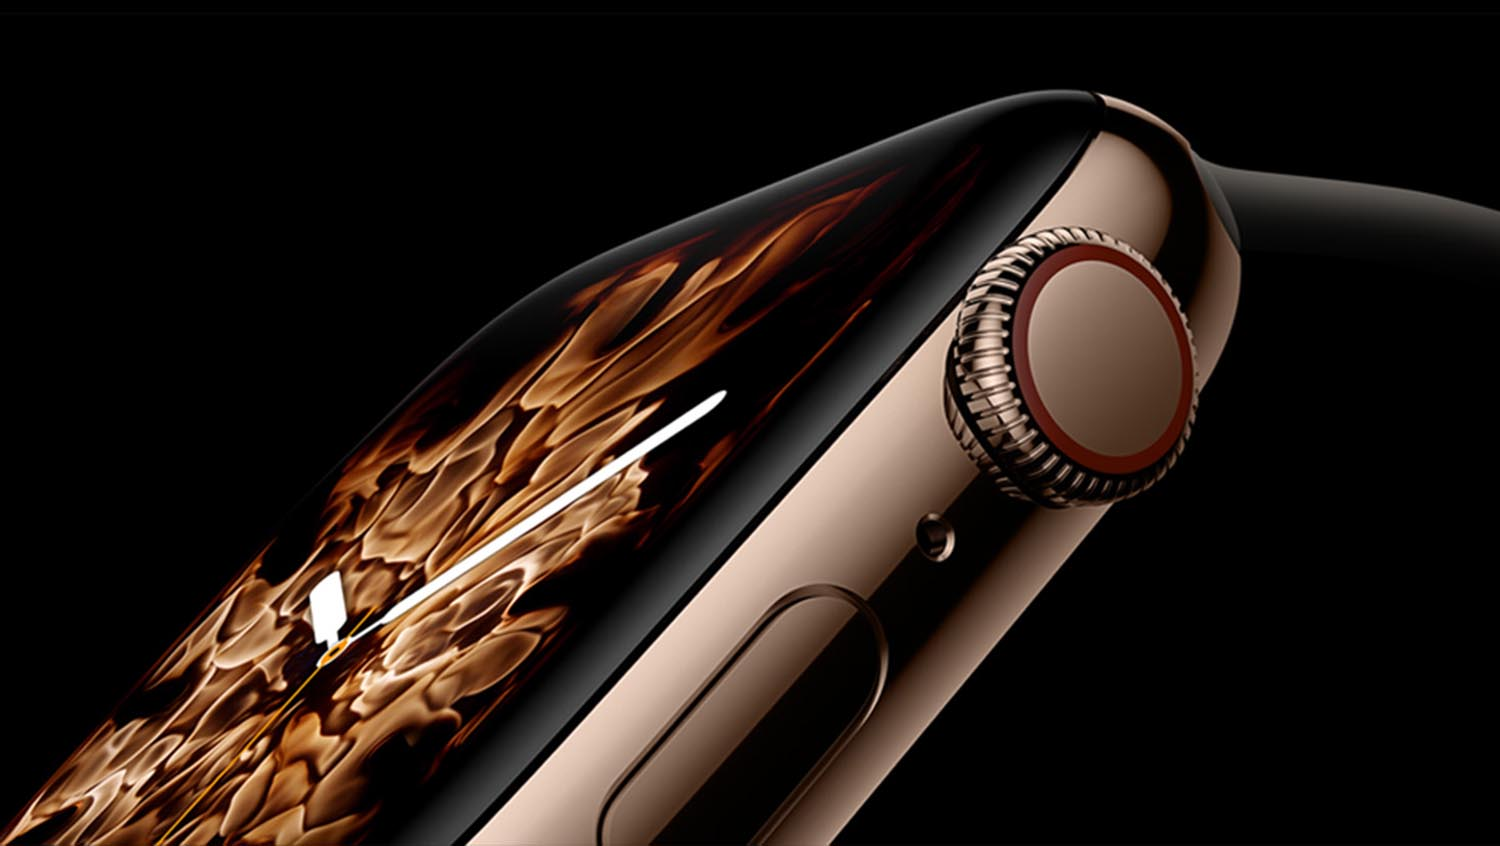 Apple Watch Series 5 Reportedly Arriving in H2 2019 With